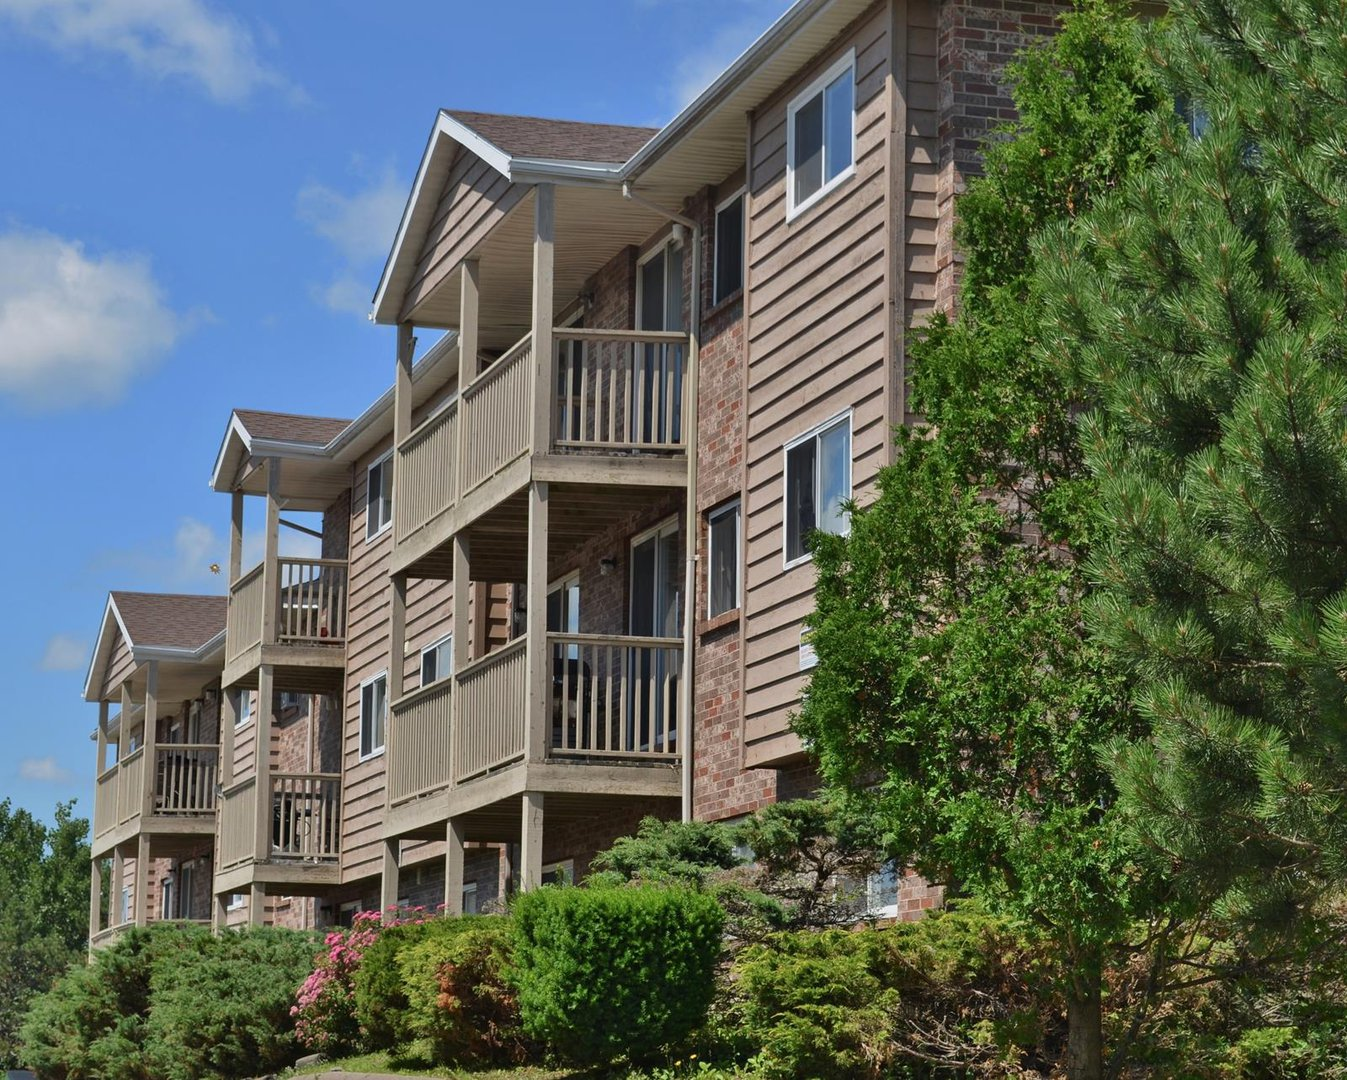 Apartment for rent at 96 Highfield Park Drive G, Dartmouth, NS. This is the outdoor building.